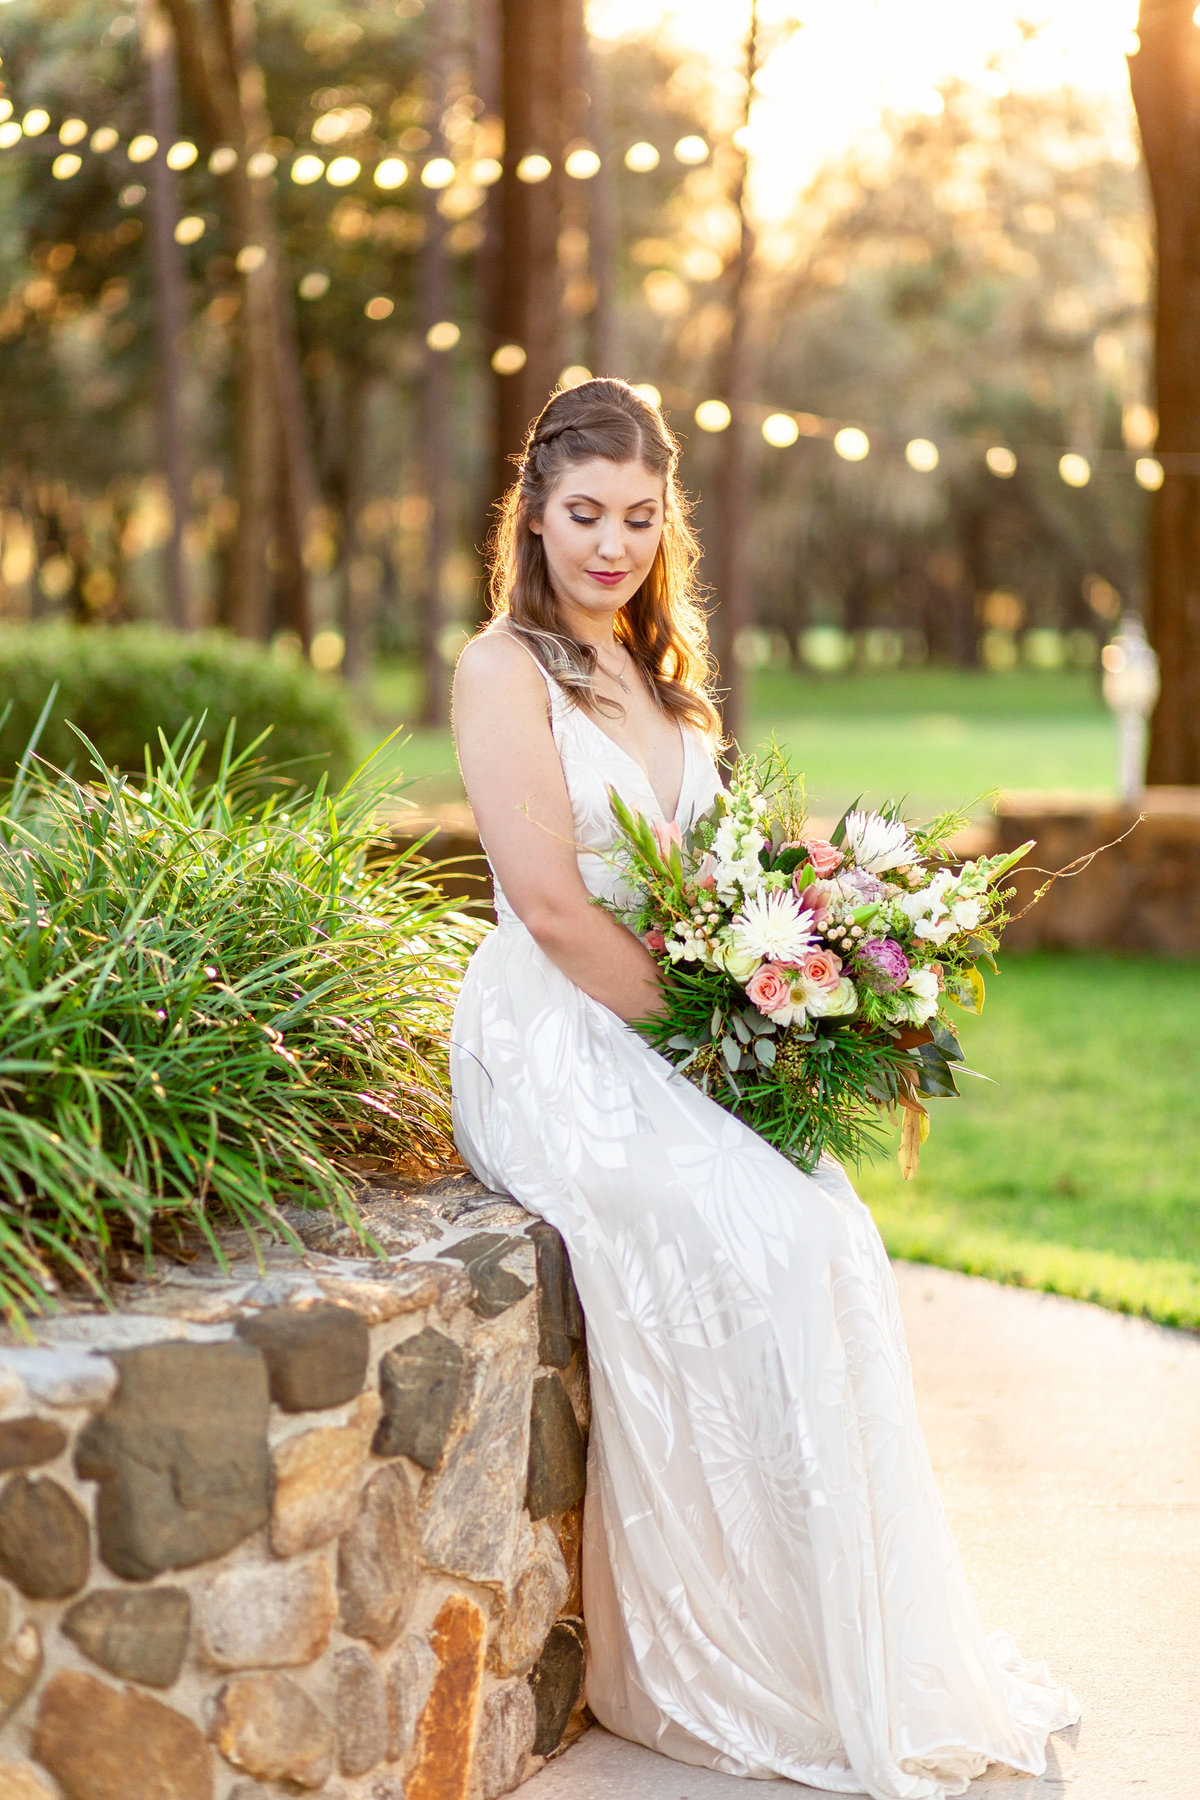 Bride in white wedding dress sits on stone wall at charming wedding venue at sunset with a golden hour glow as she holds her green bridal bouquet with white and pink flowers